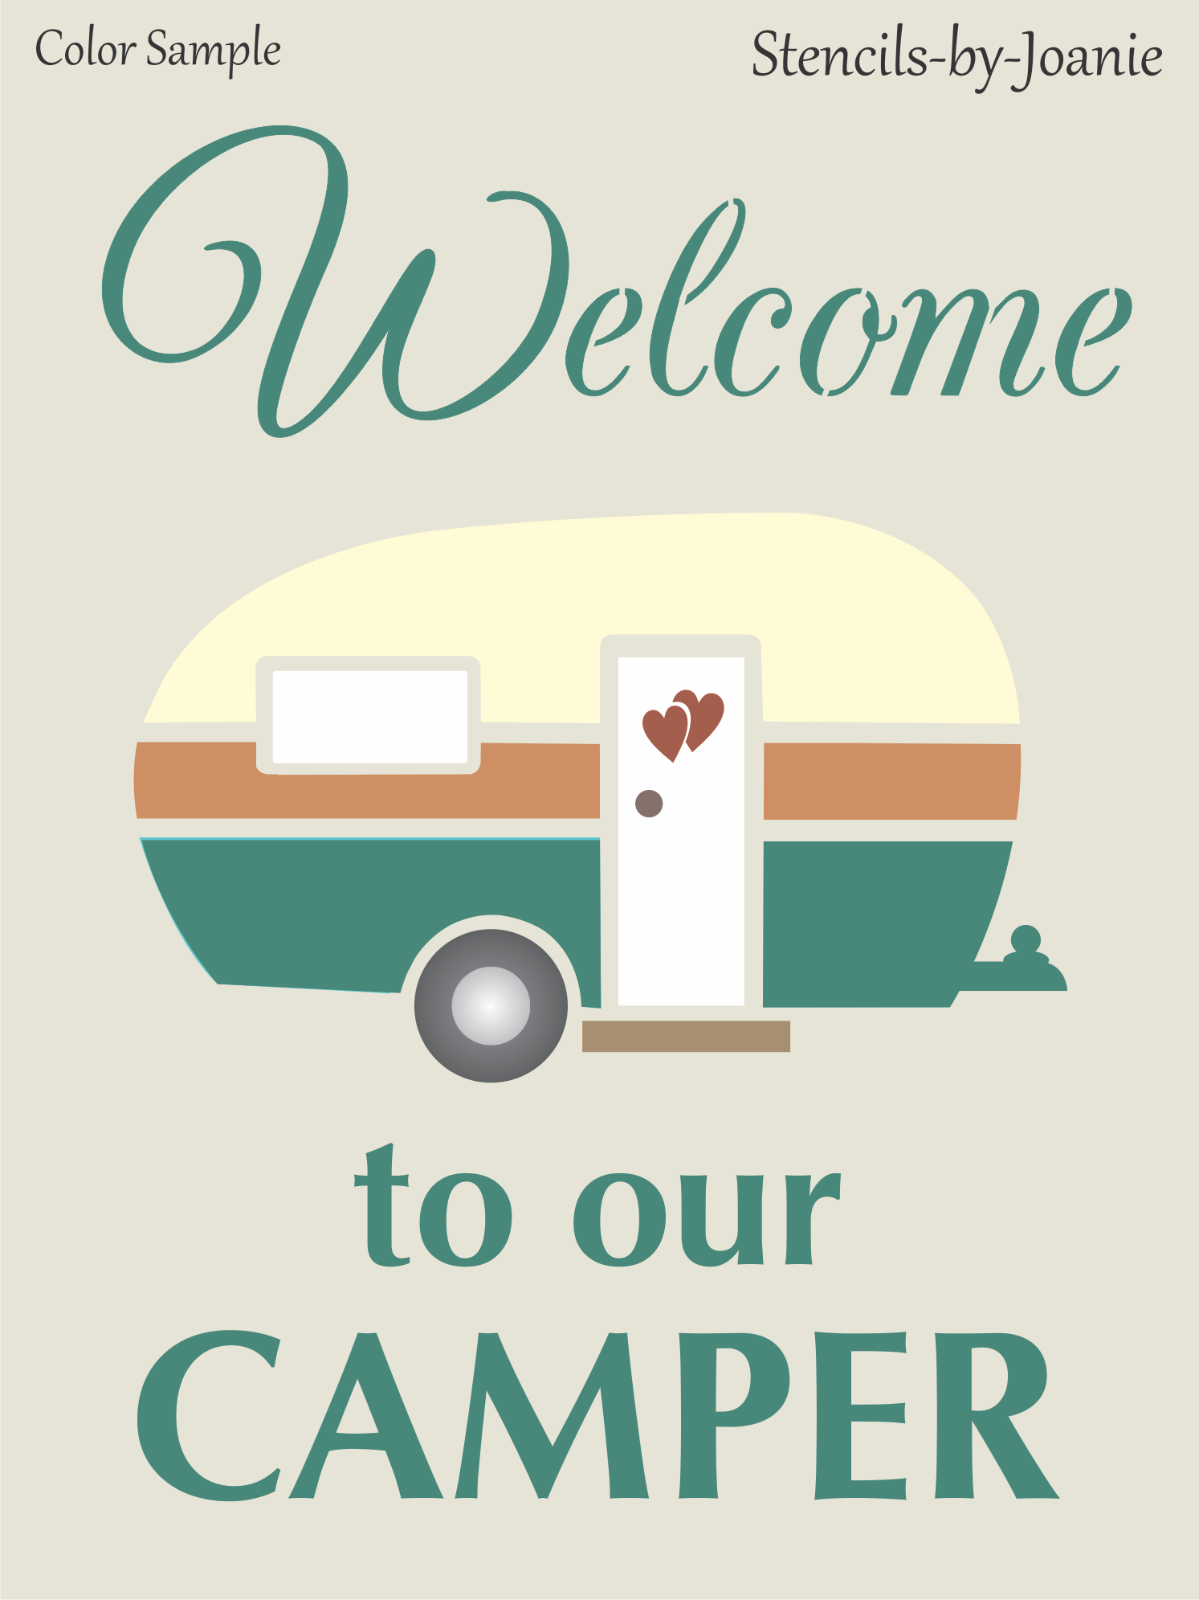 Joanie Stencil Welcome Camper RV Vintage Heart Love Family Cabin Campground Art